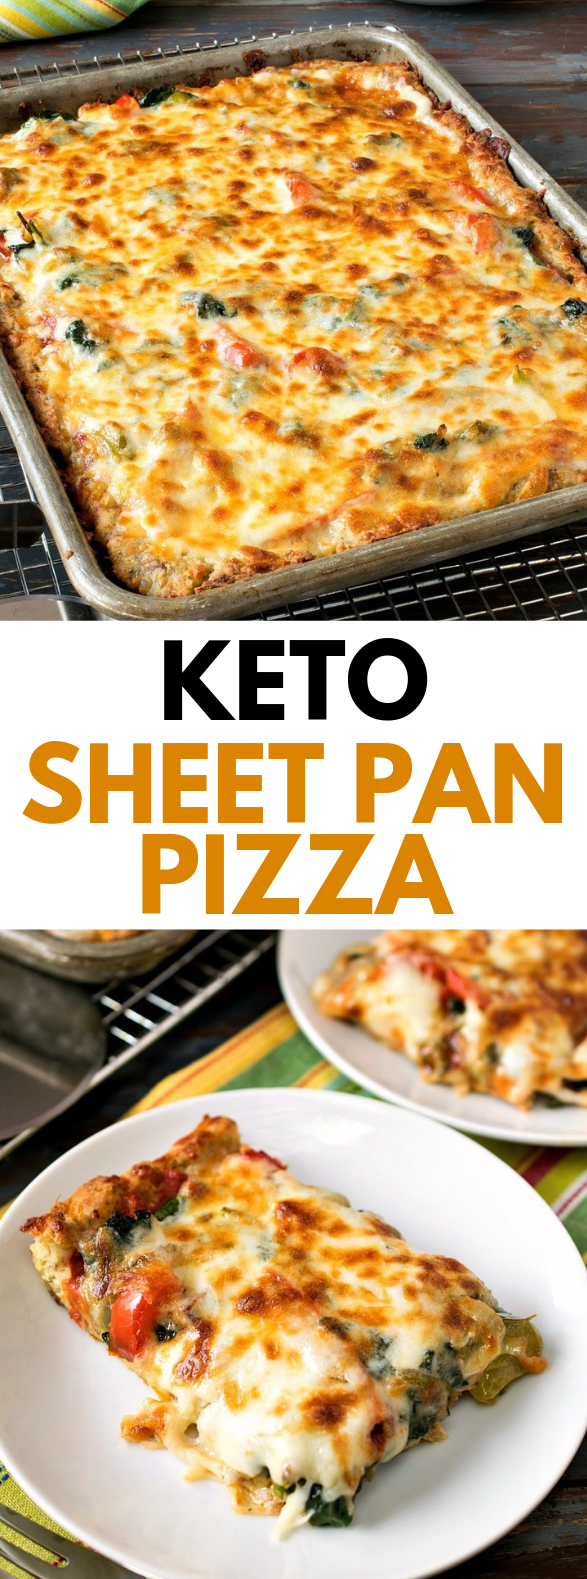 Keto Sheet Pan Pizza #lowcarb #glutenfree